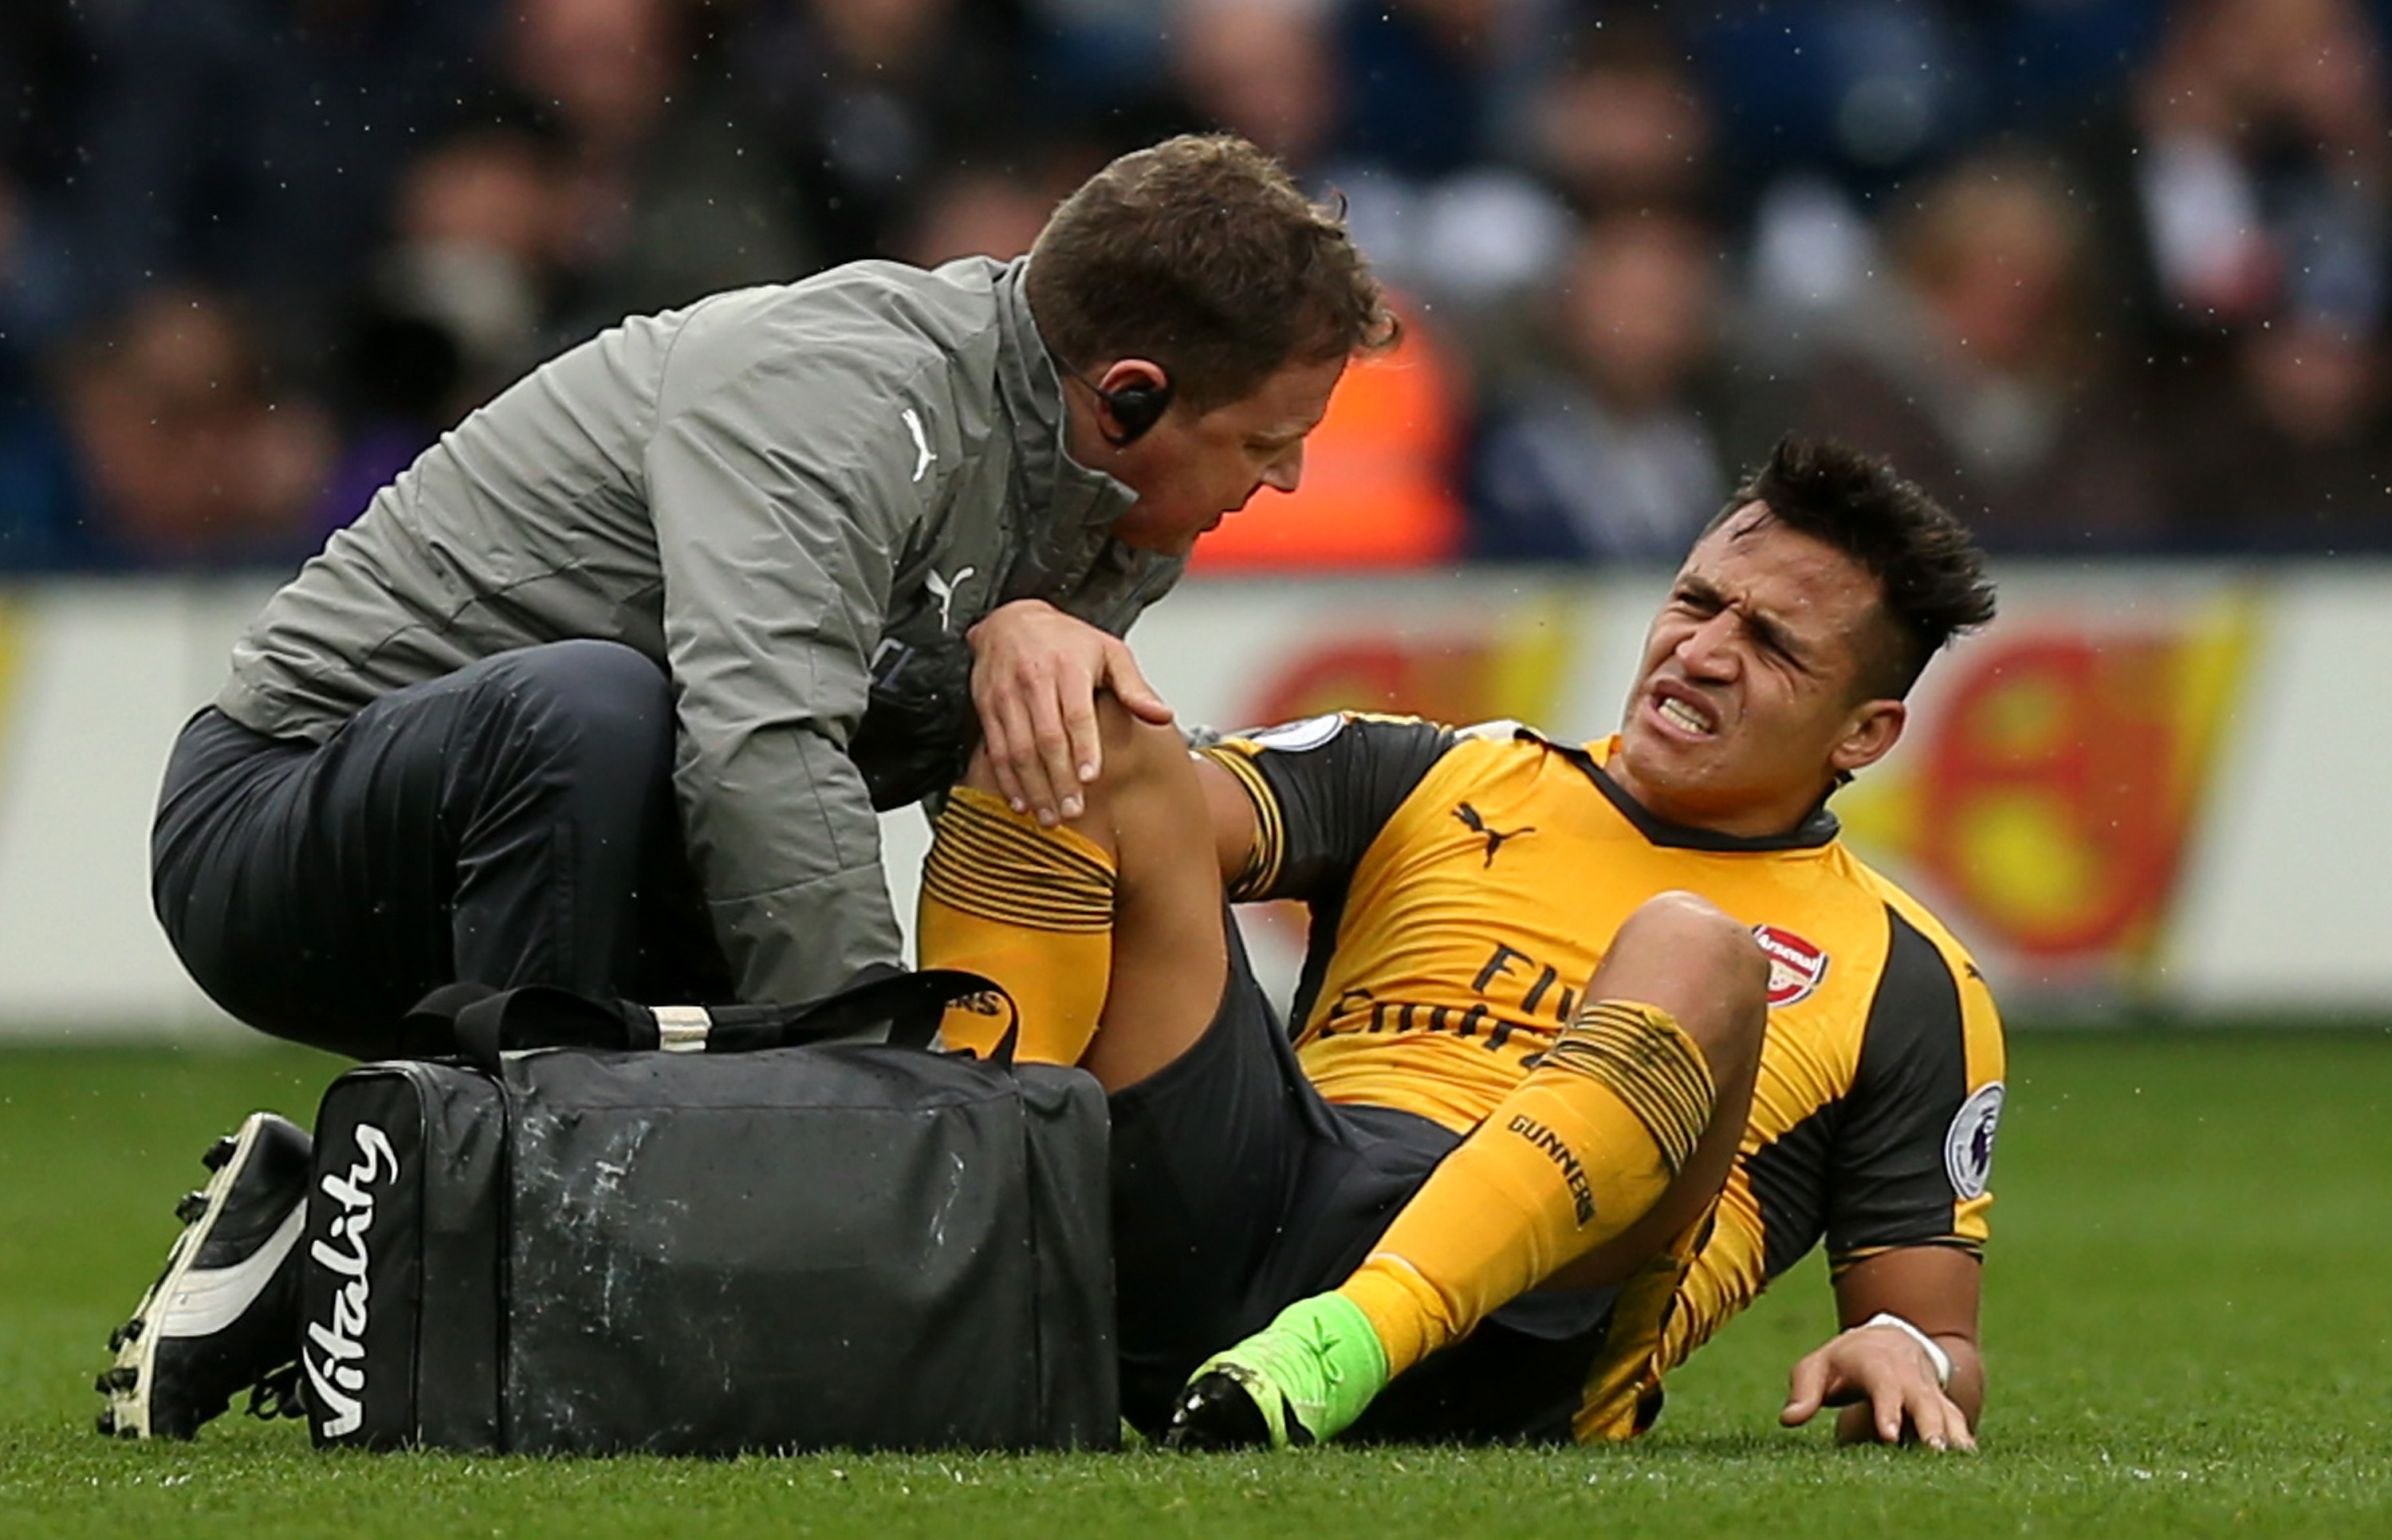 Alexis Sanchez risks sparking new row between Arsenal and Chile over ankle injury